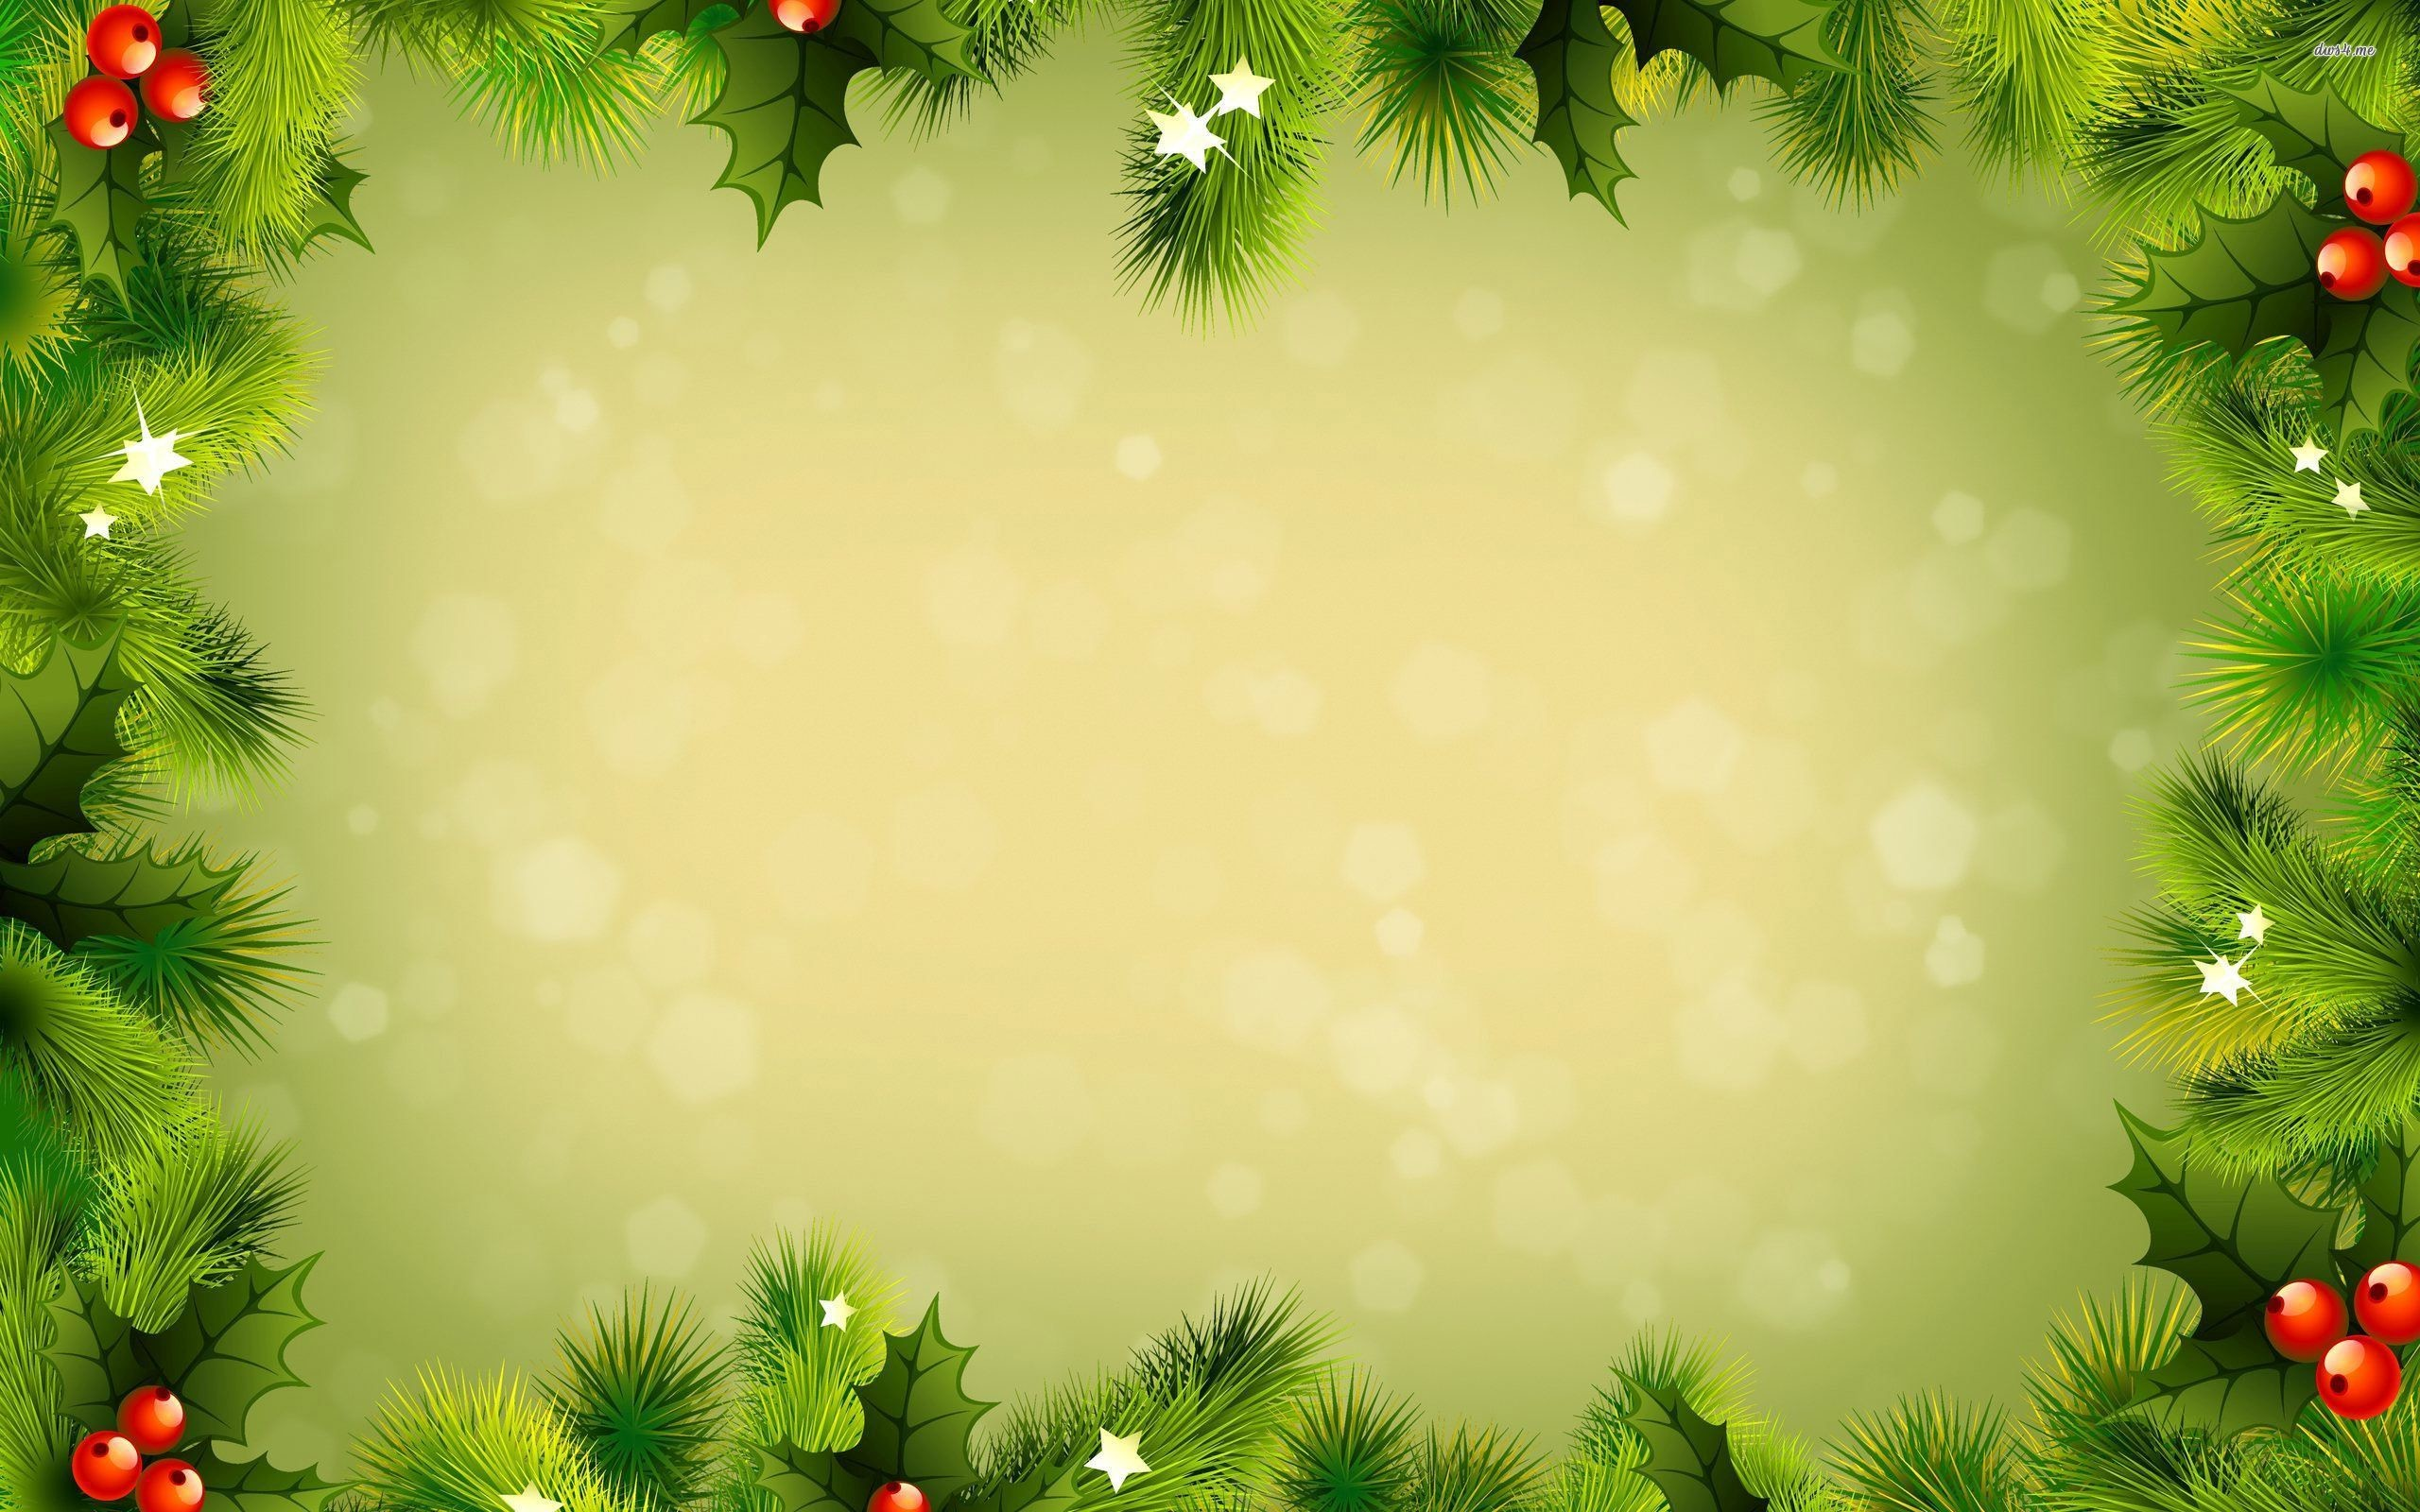 christmas wallpapers backgrounds (62+ images)